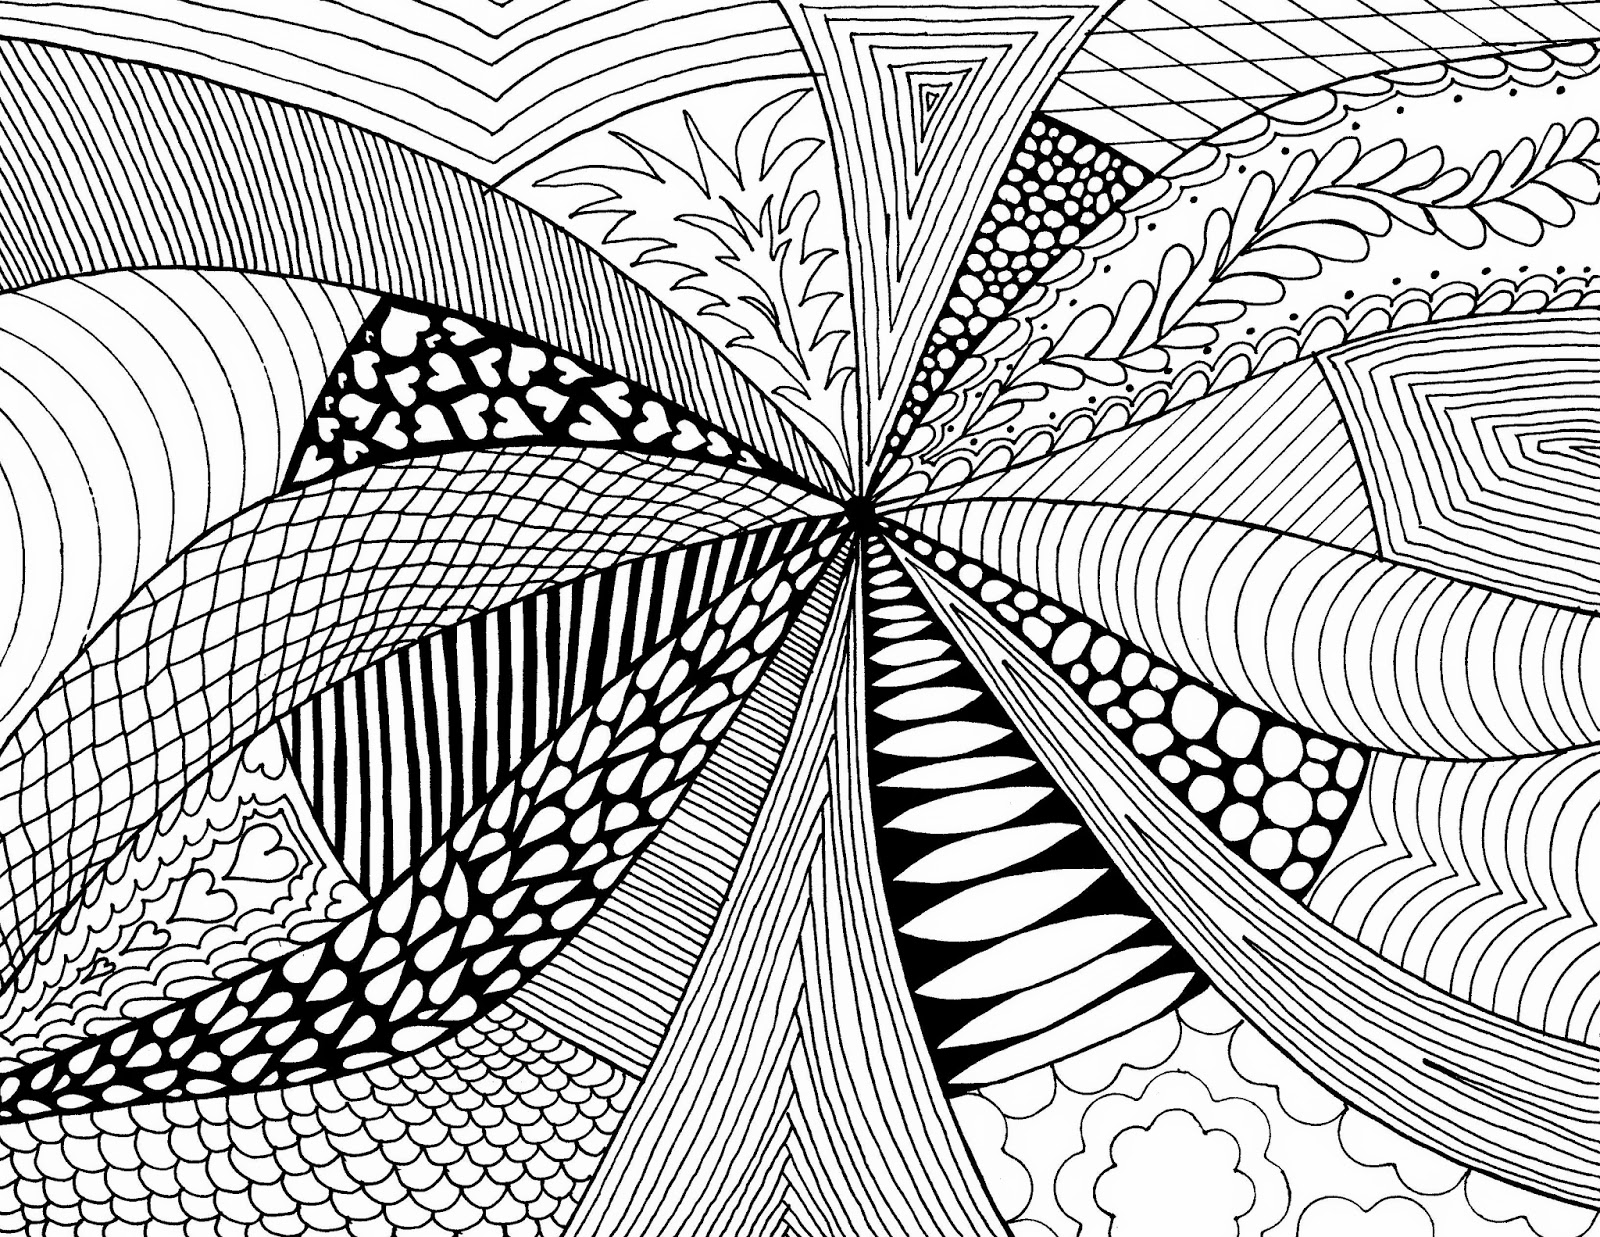 Spur Art Design Your Line : Circle pattern drawing at getdrawings free for